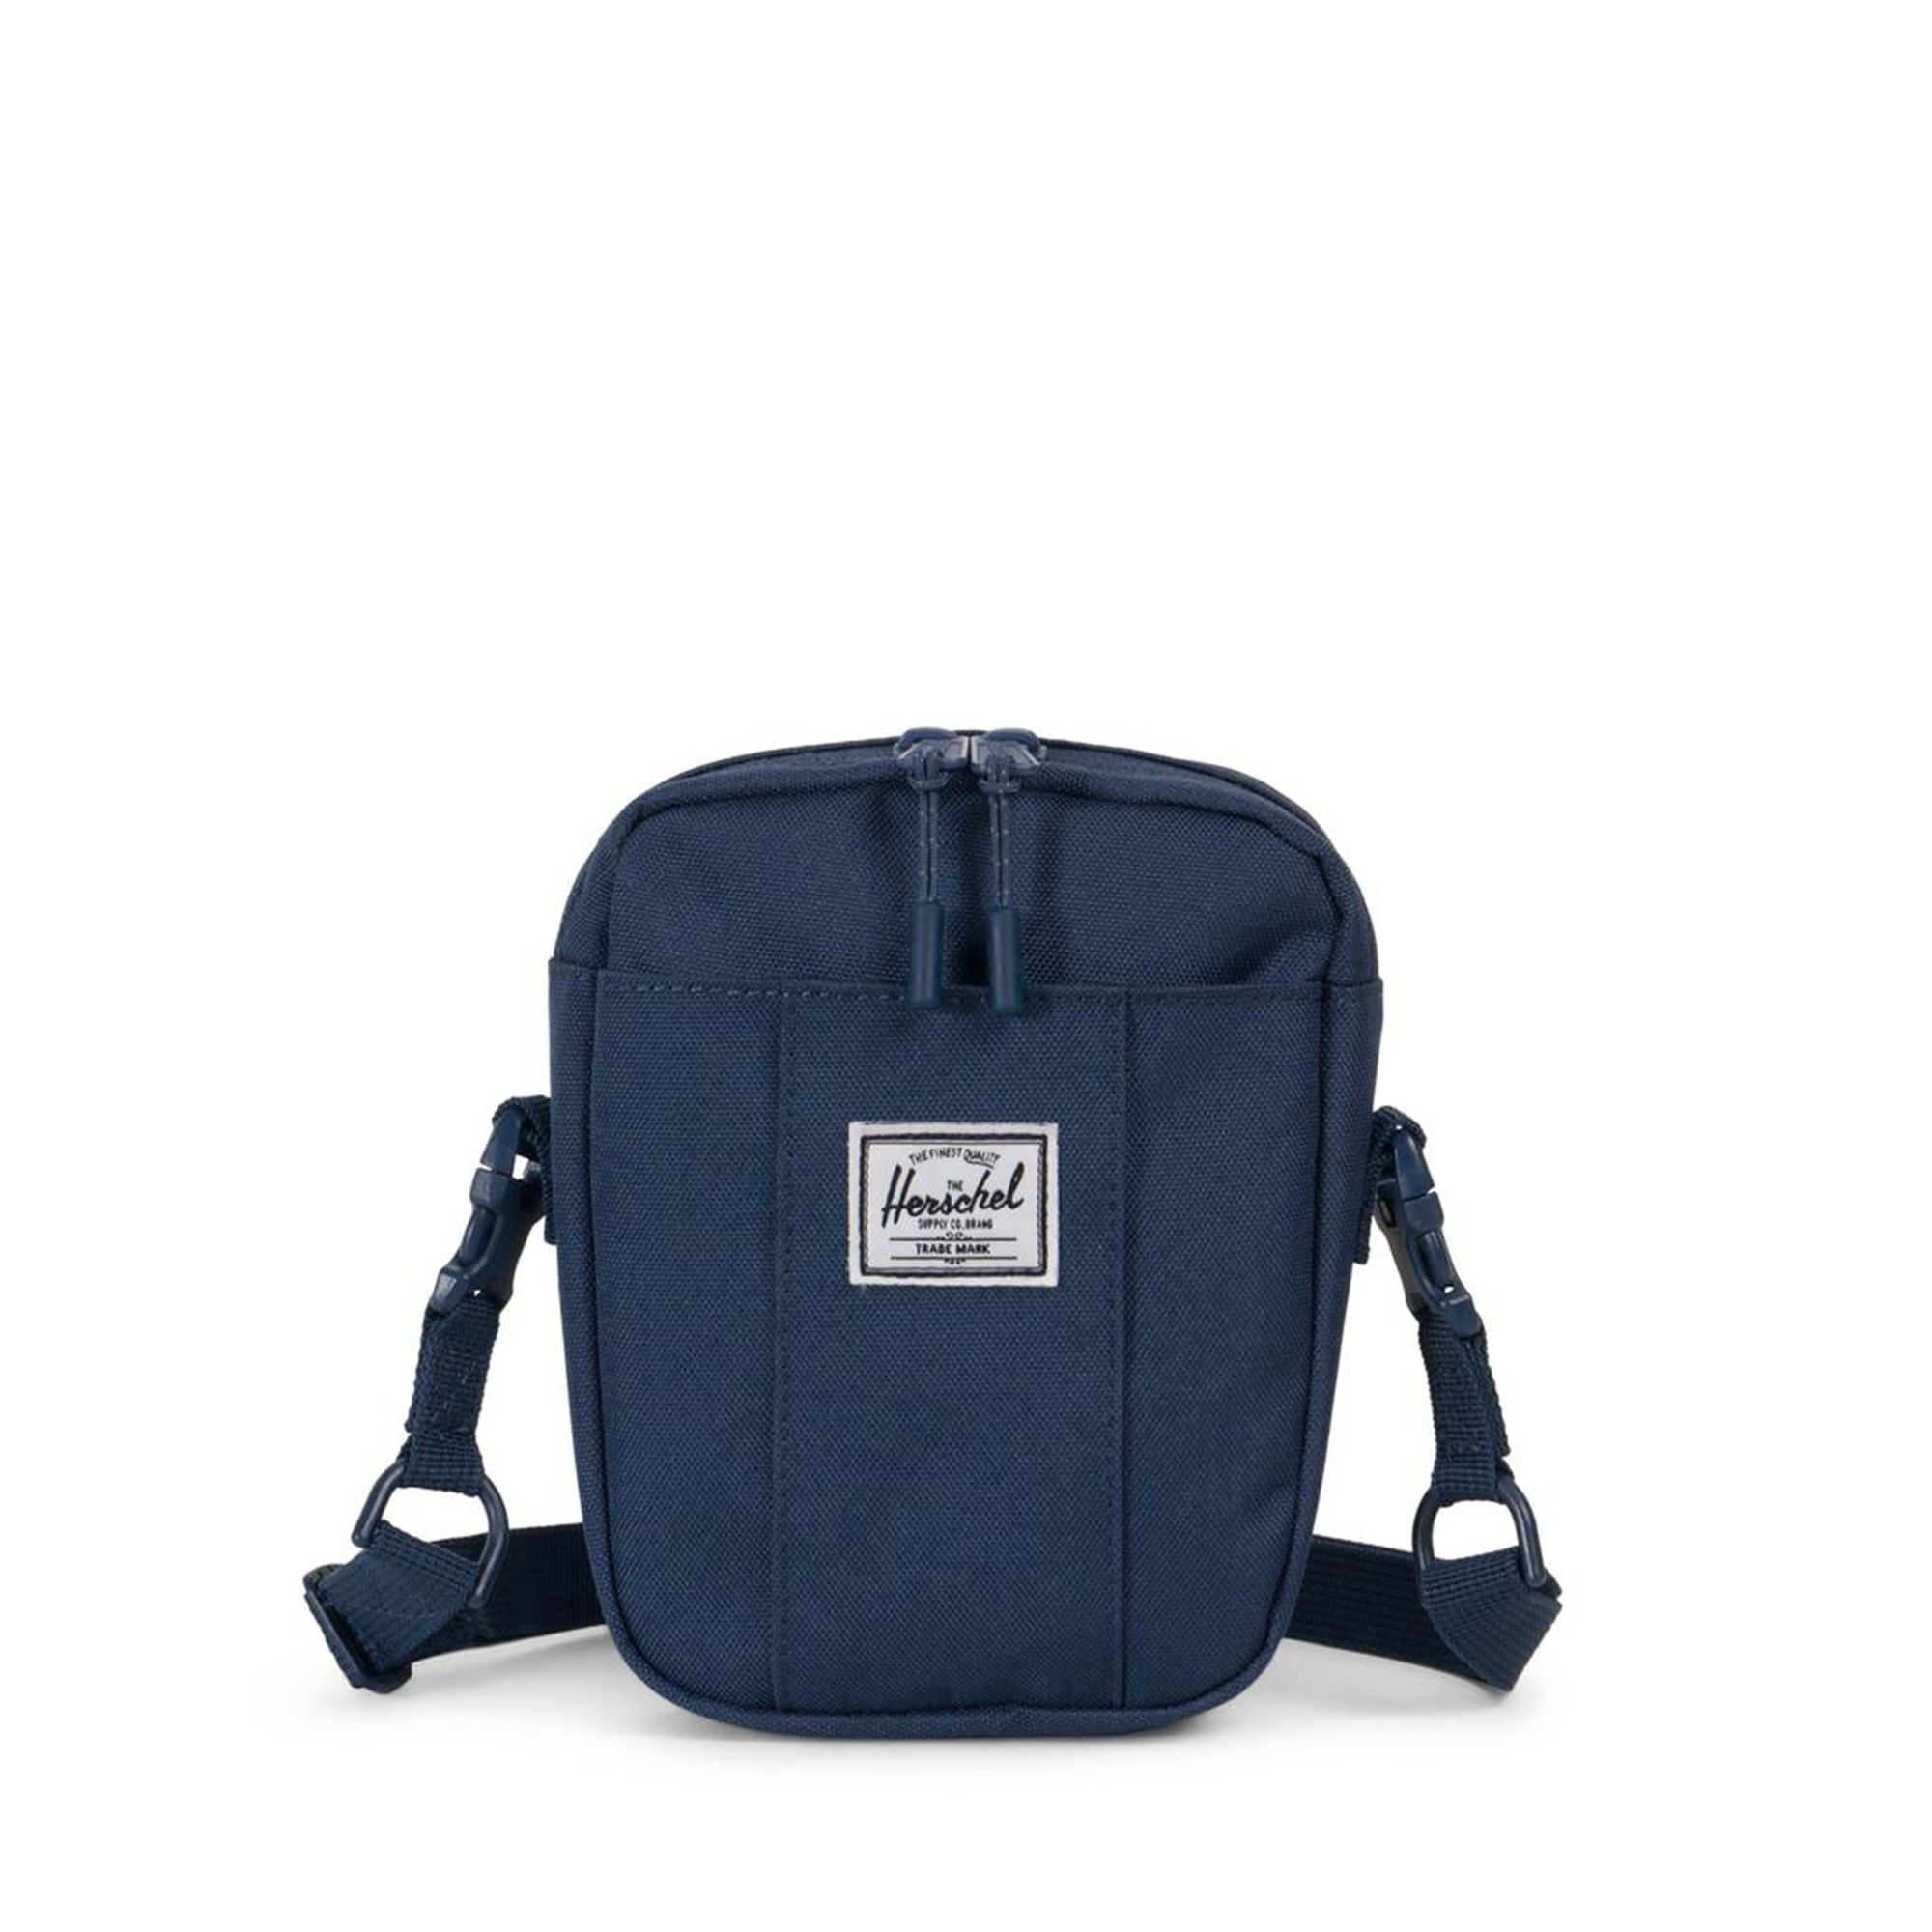 Herschel Supply Co Cruz crossbody axelremsväska, Blå